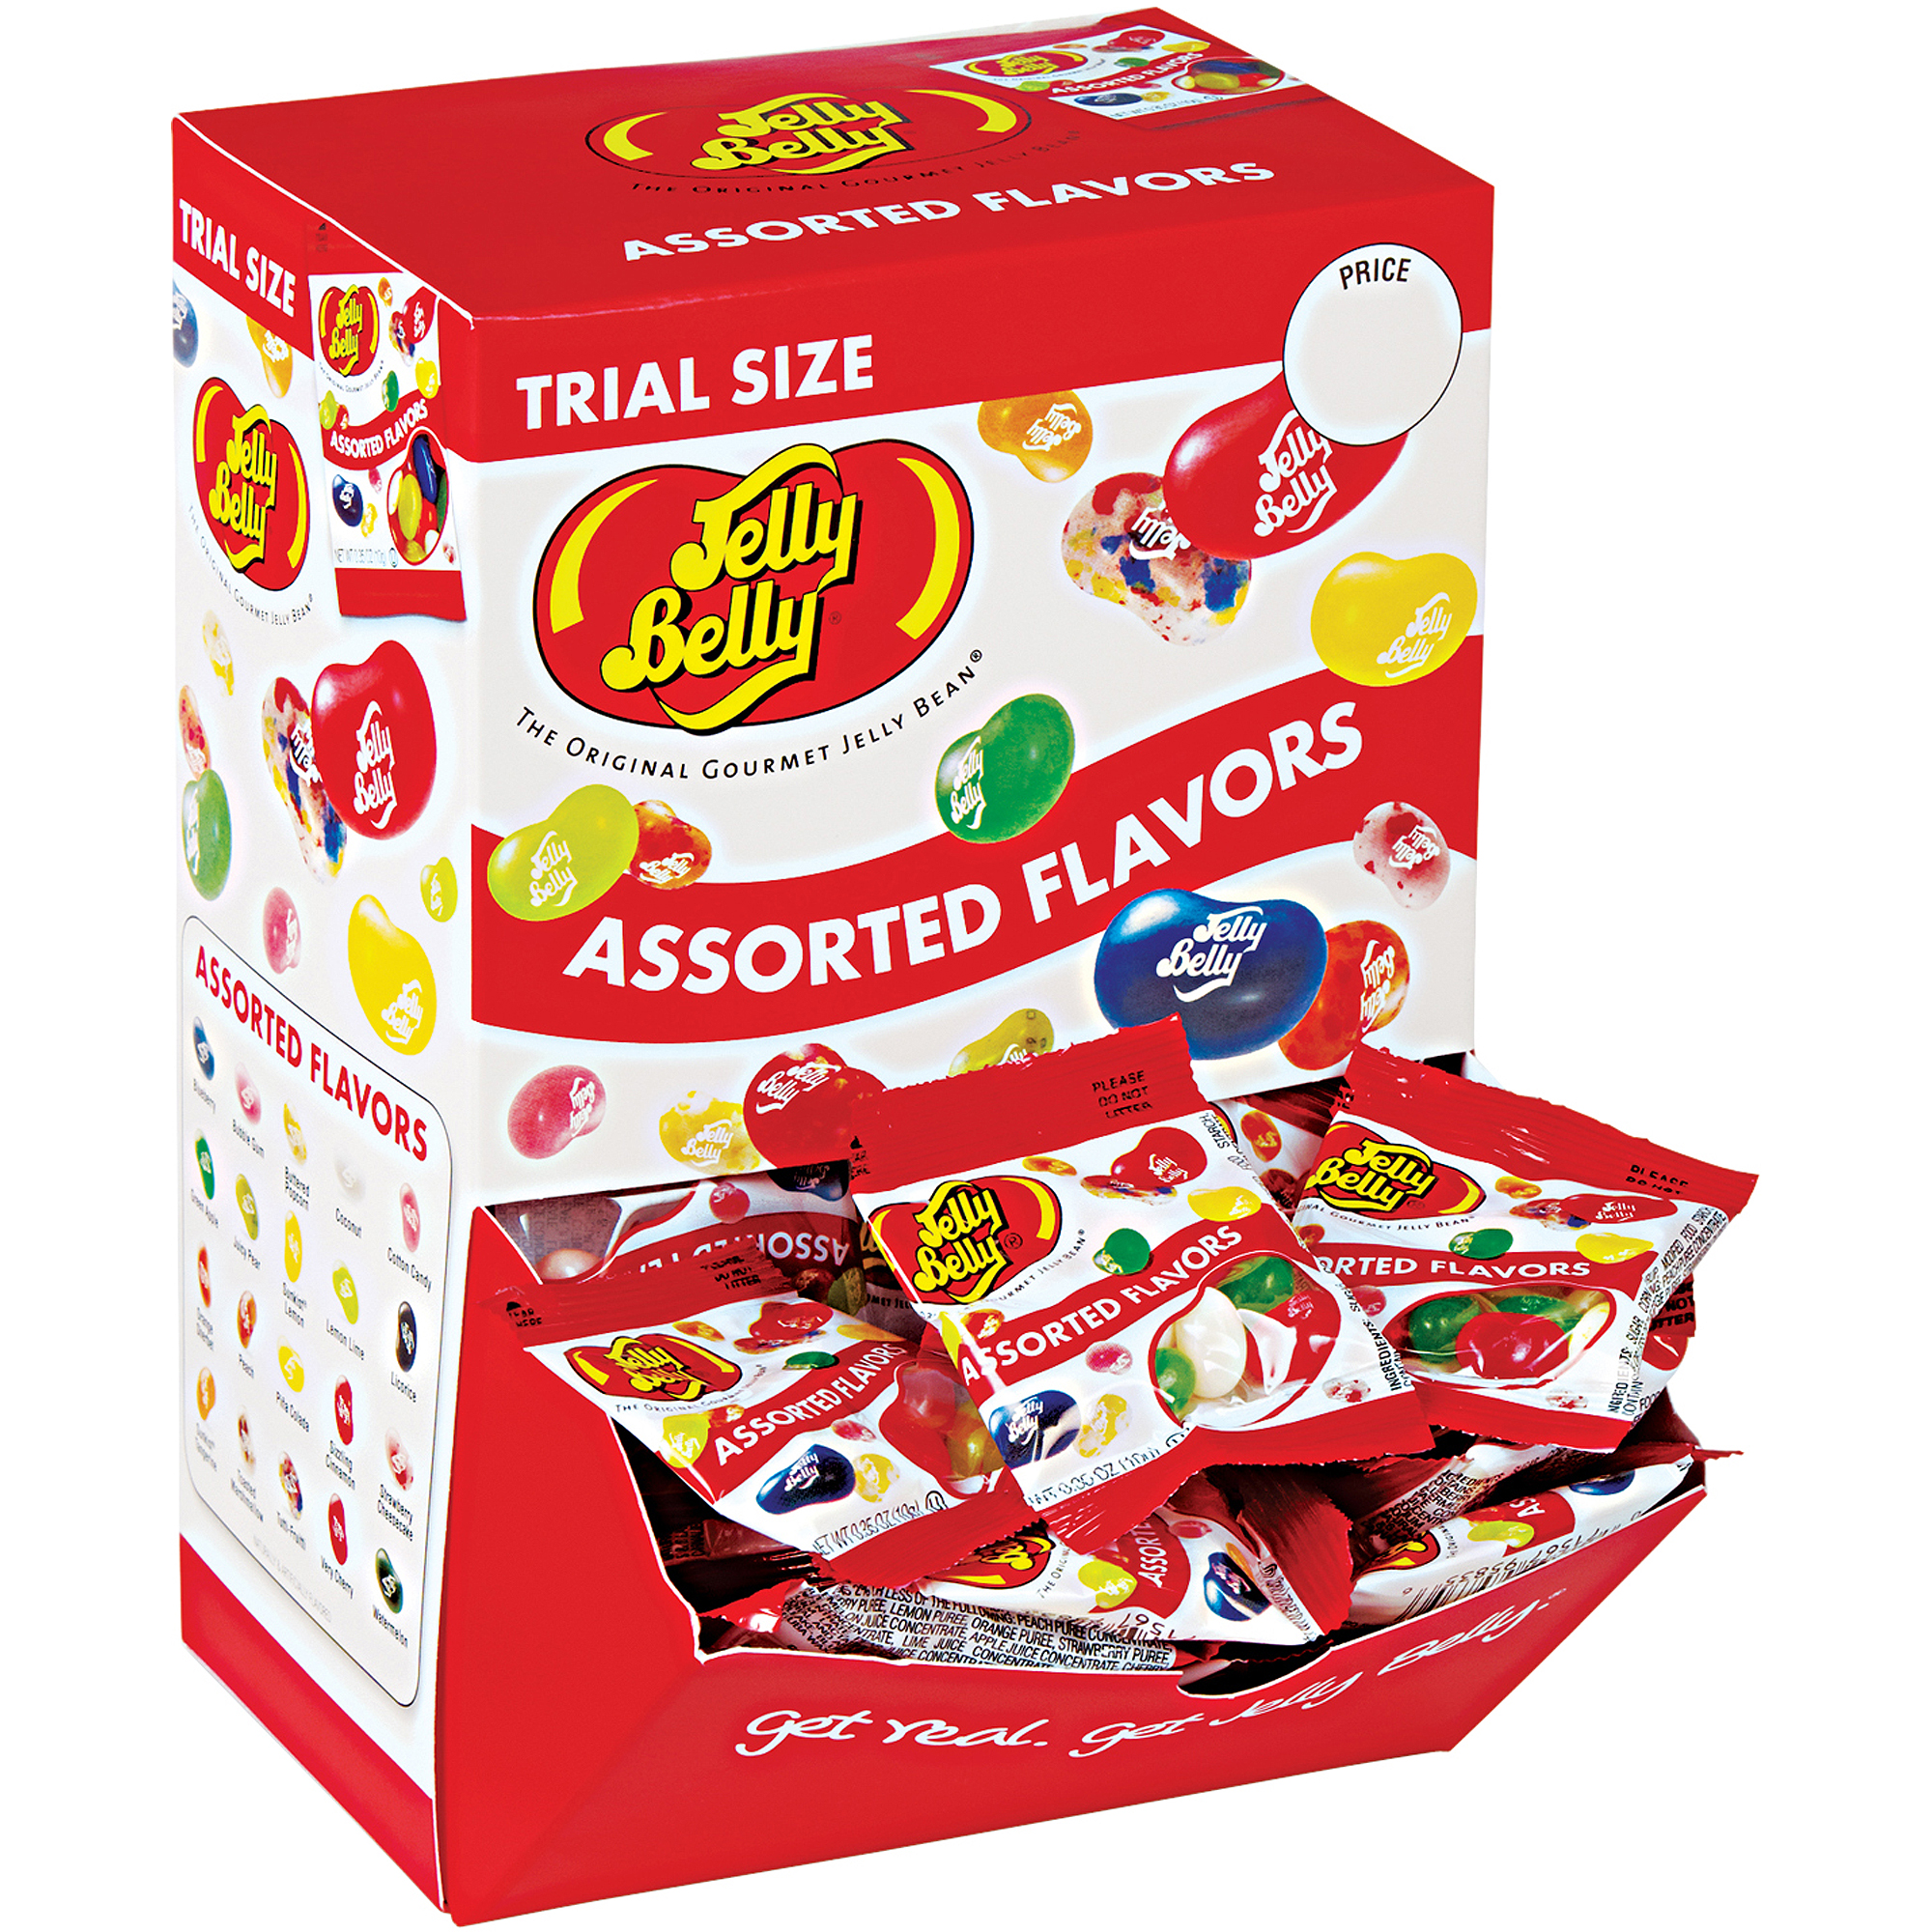 Jelly Belly Assorted Flavors Jelly Beans, 0.35 oz, 80 count